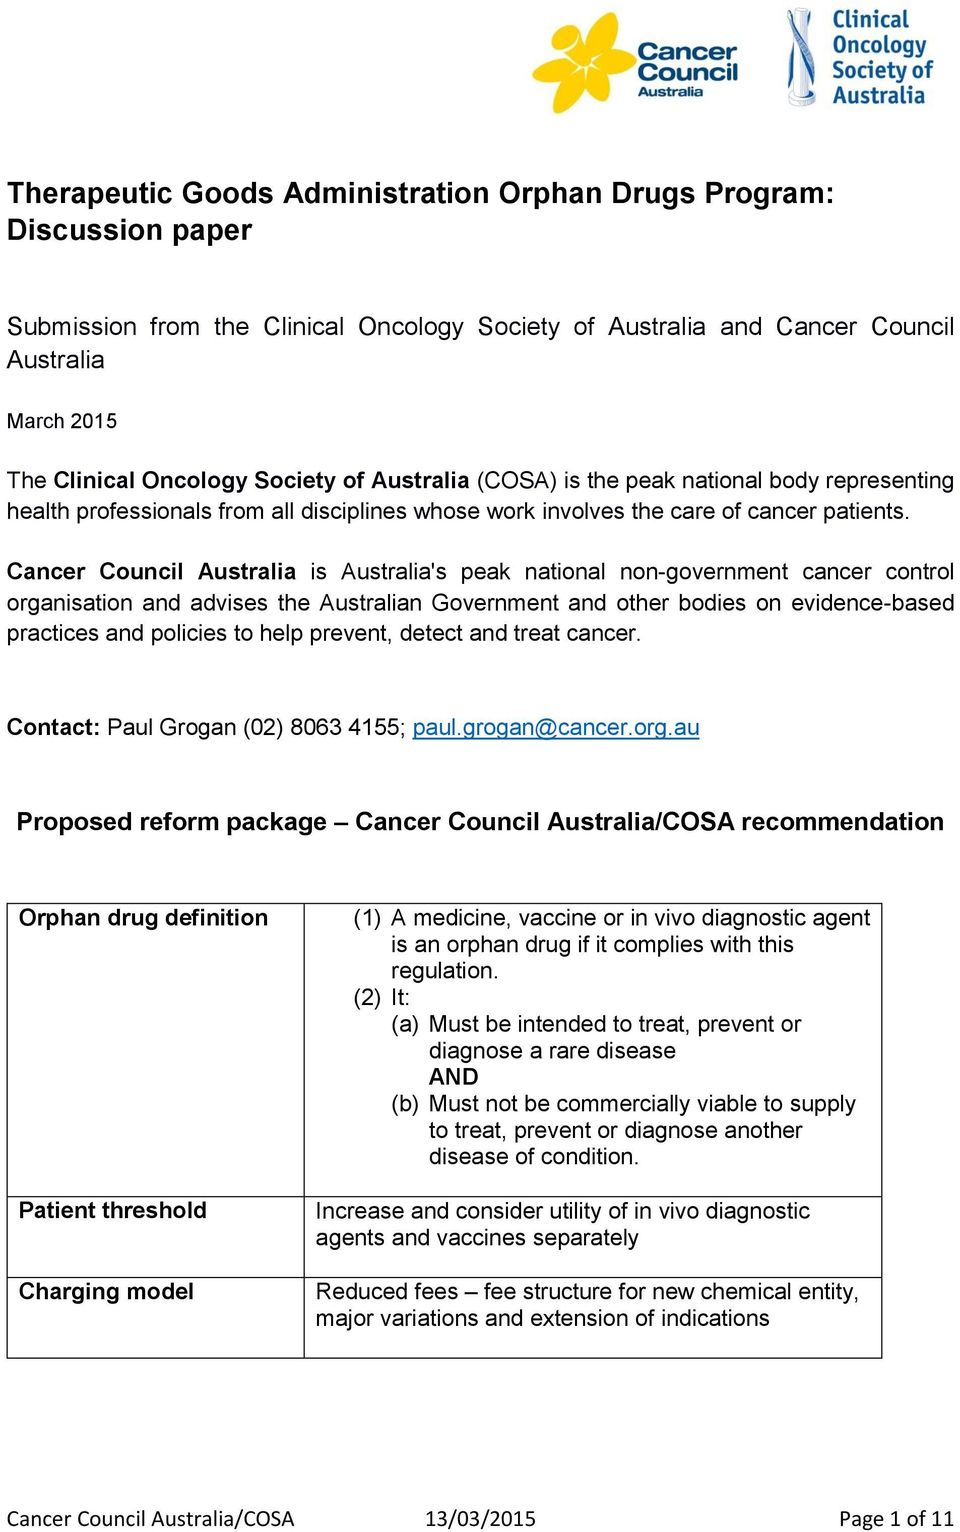 Cancer Council Australia is Australia's peak national non-government cancer control organisation and advises the Australian Government and other bodies on evidence-based practices and policies to